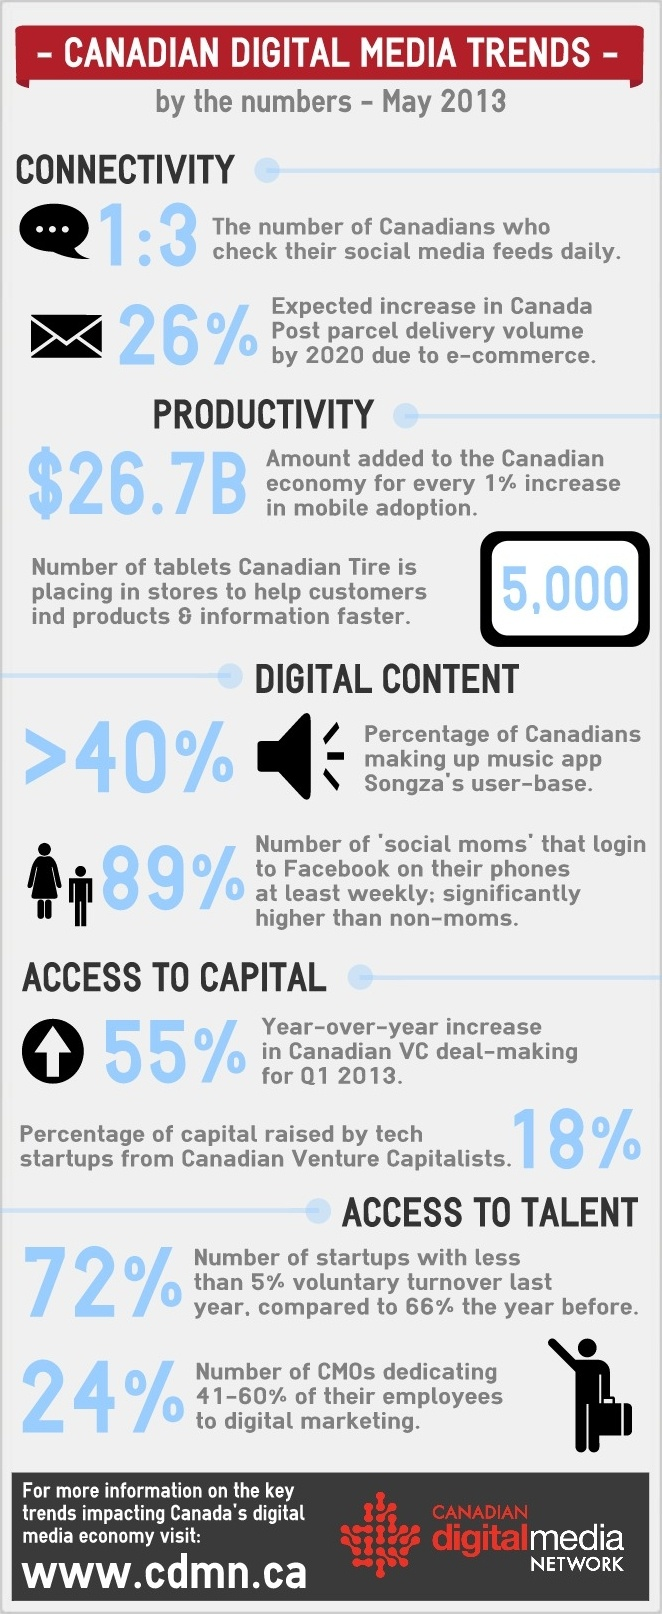 Canadian Digital Media Trends by the Numbers, May 2013 #CDA30 #CDMN